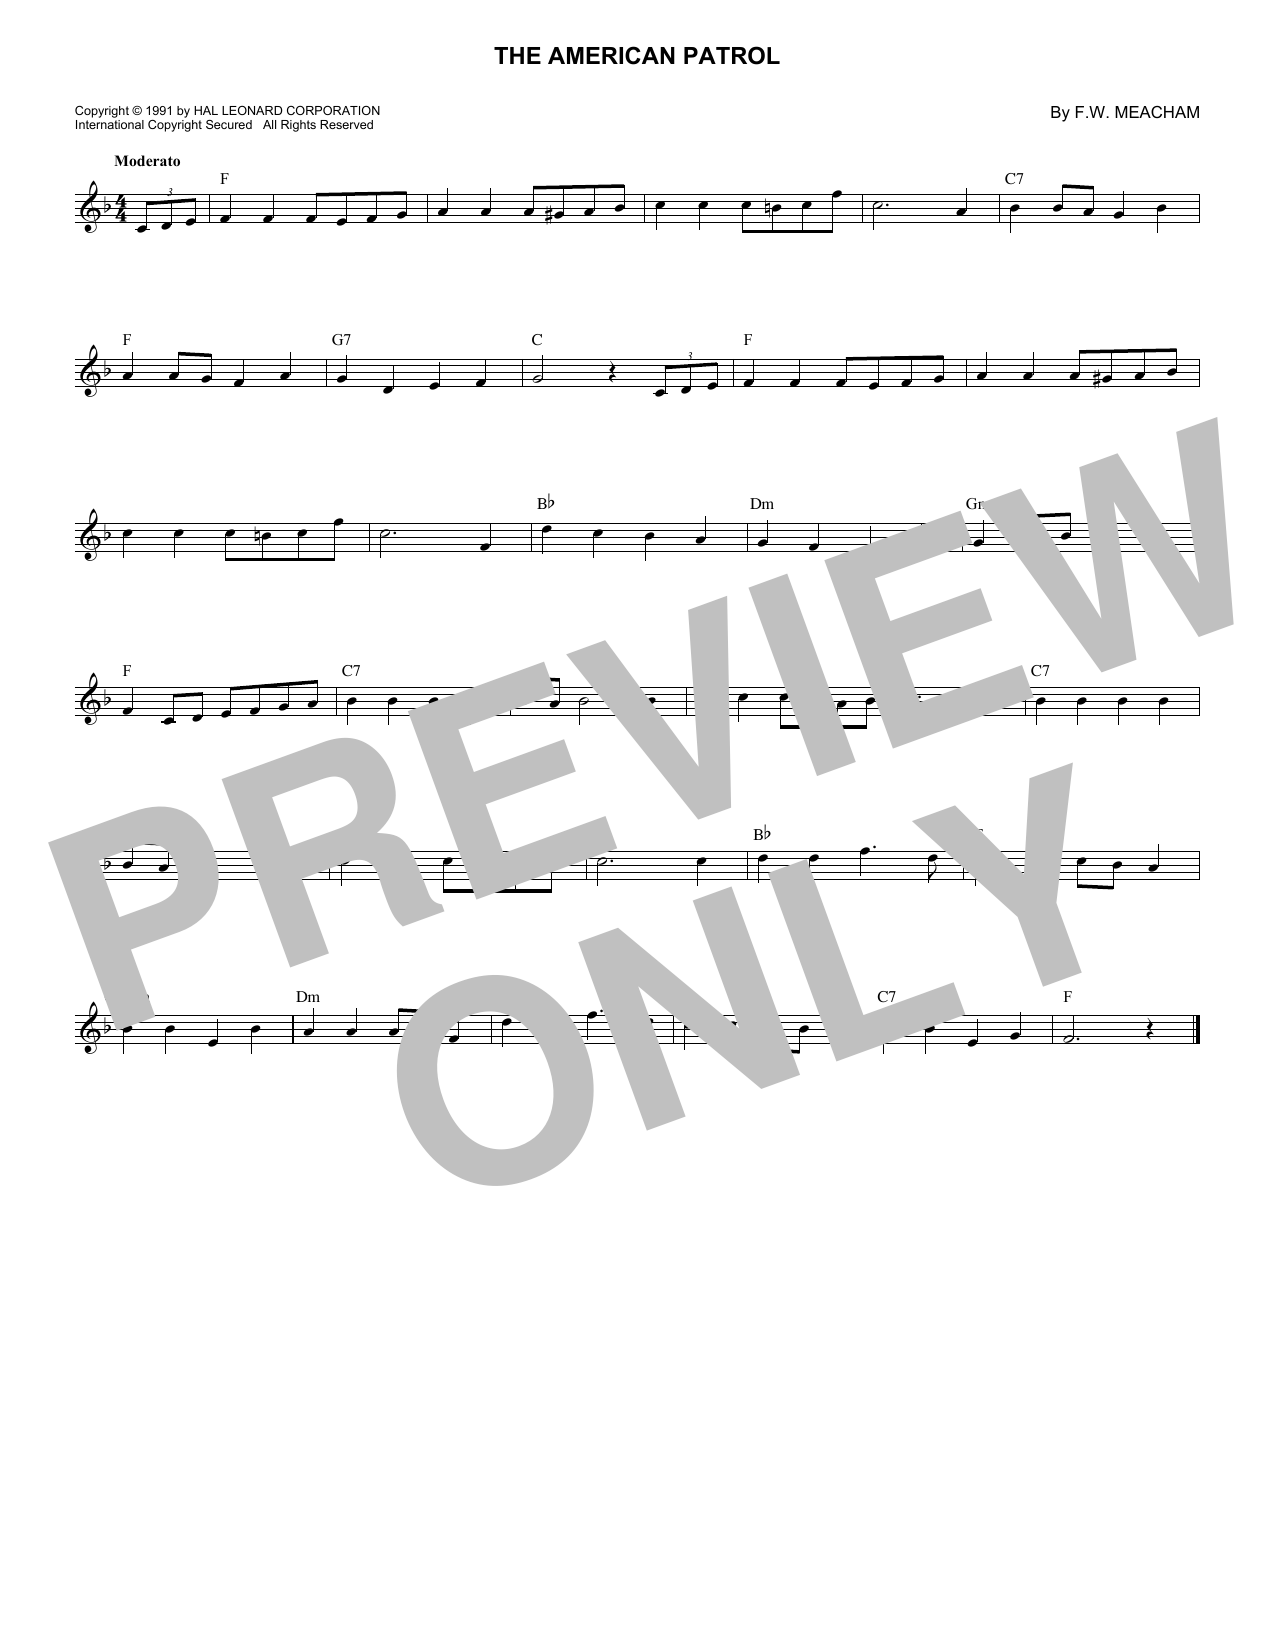 F.W. Meacham The American Patrol sheet music notes and chords. Download Printable PDF.